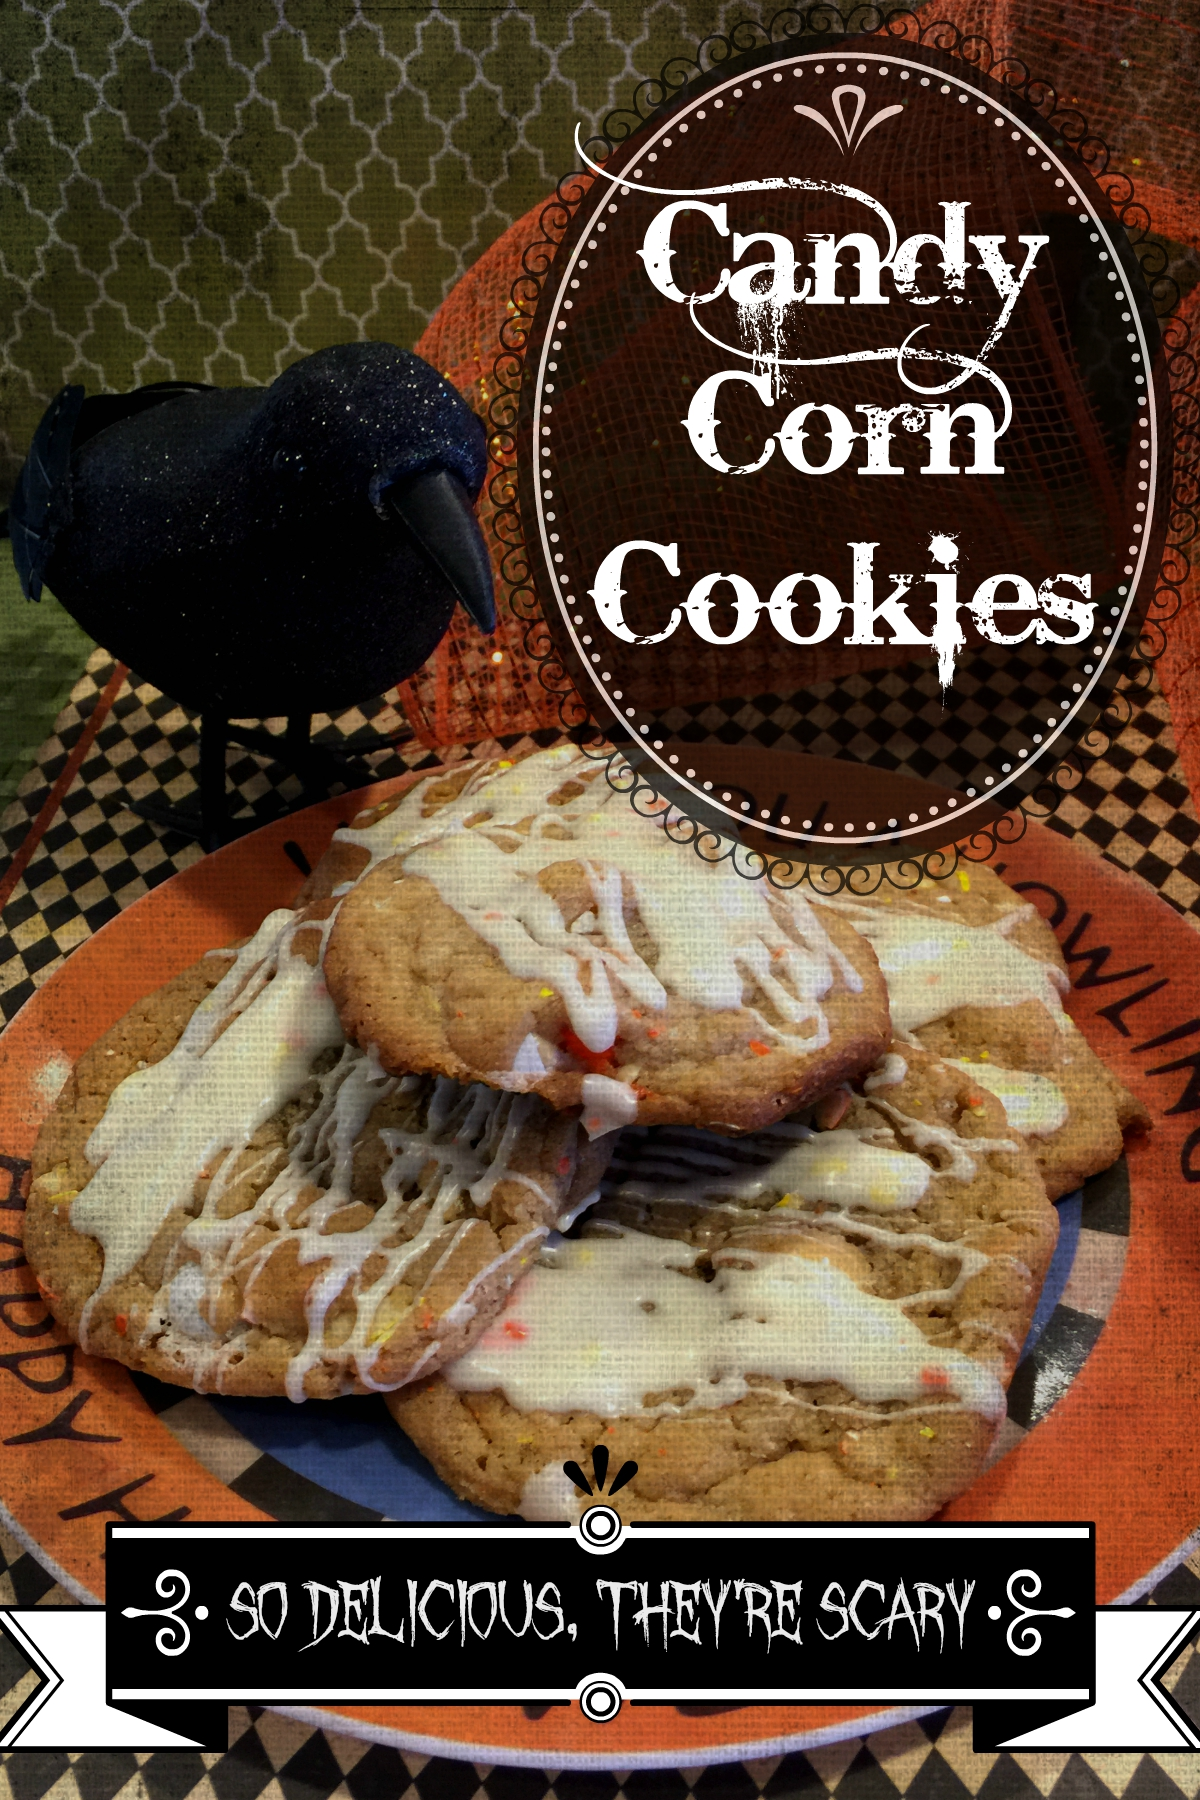 Candy Corn Cookies - Deborah Ward Contributor - Life With Lorelai